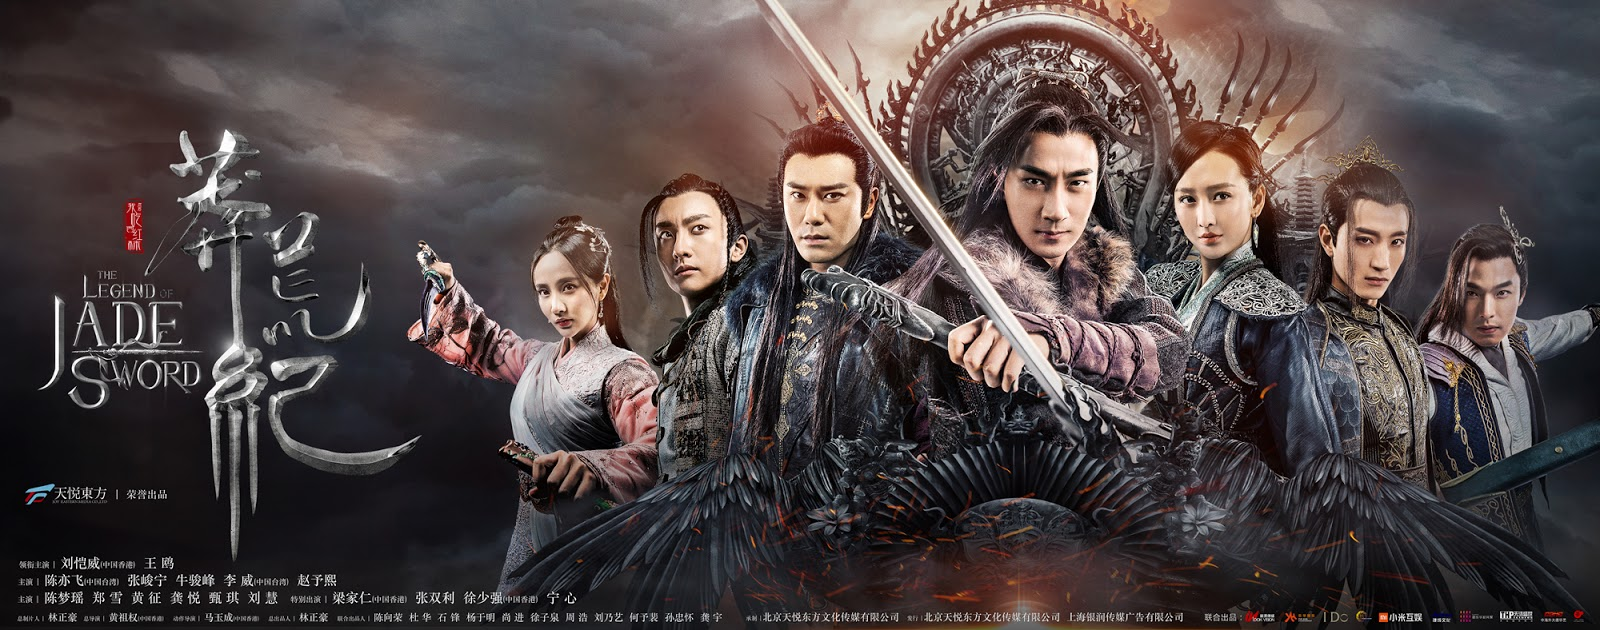 The Legend of Jade Sword (2018) - DramaPanda